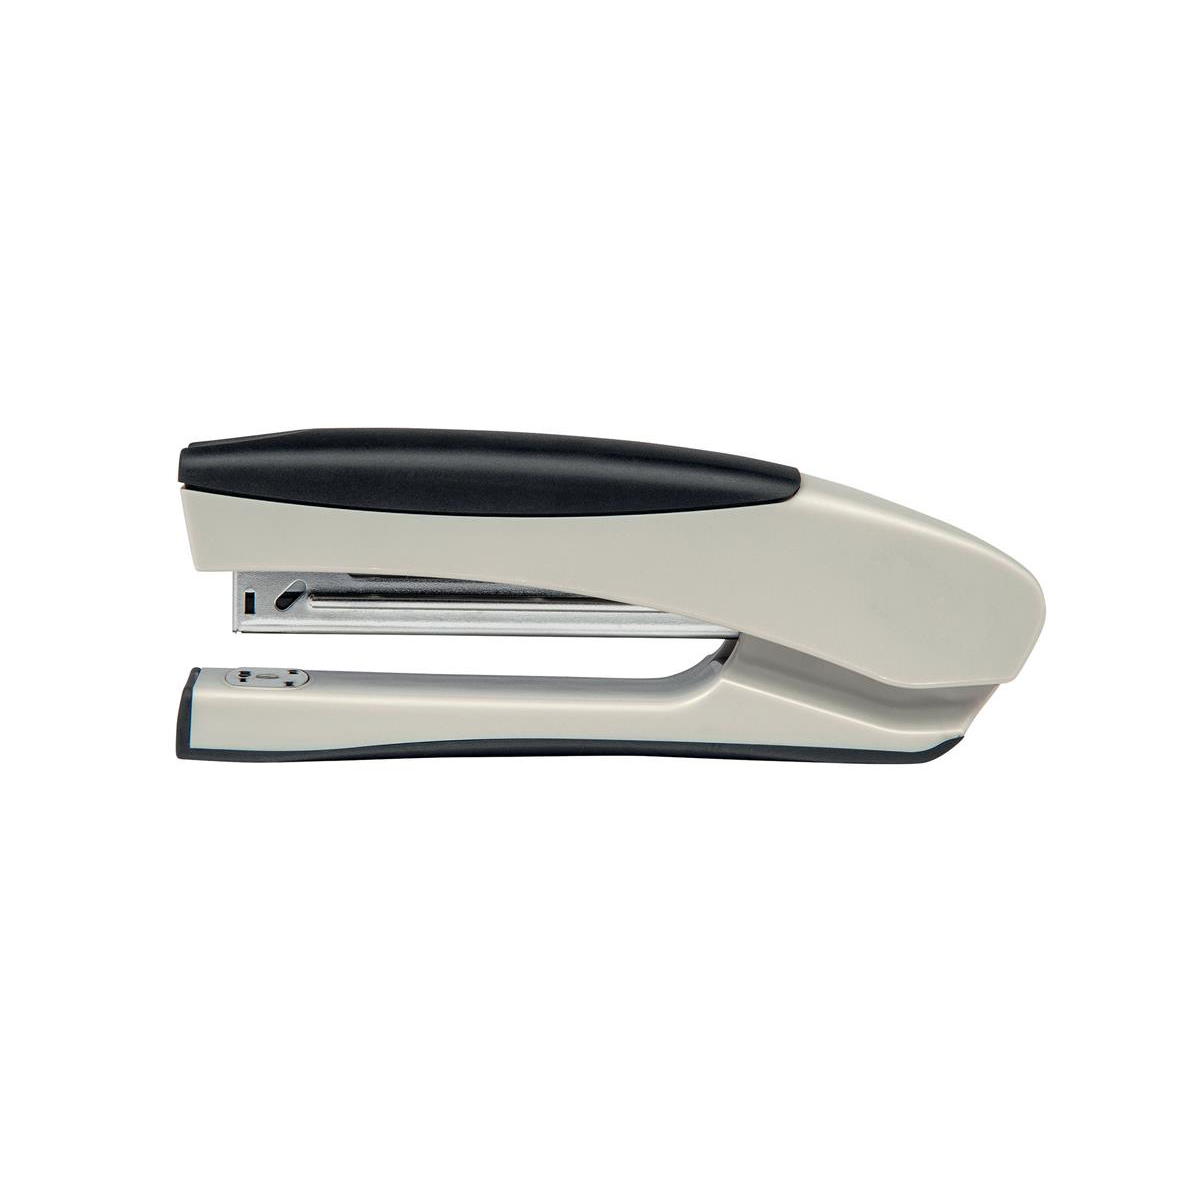 Long Arm Staplers 5 Star Office Stapler Full Strip Stand Up Soft Grip Capacity 20 Sheets Silver/Black